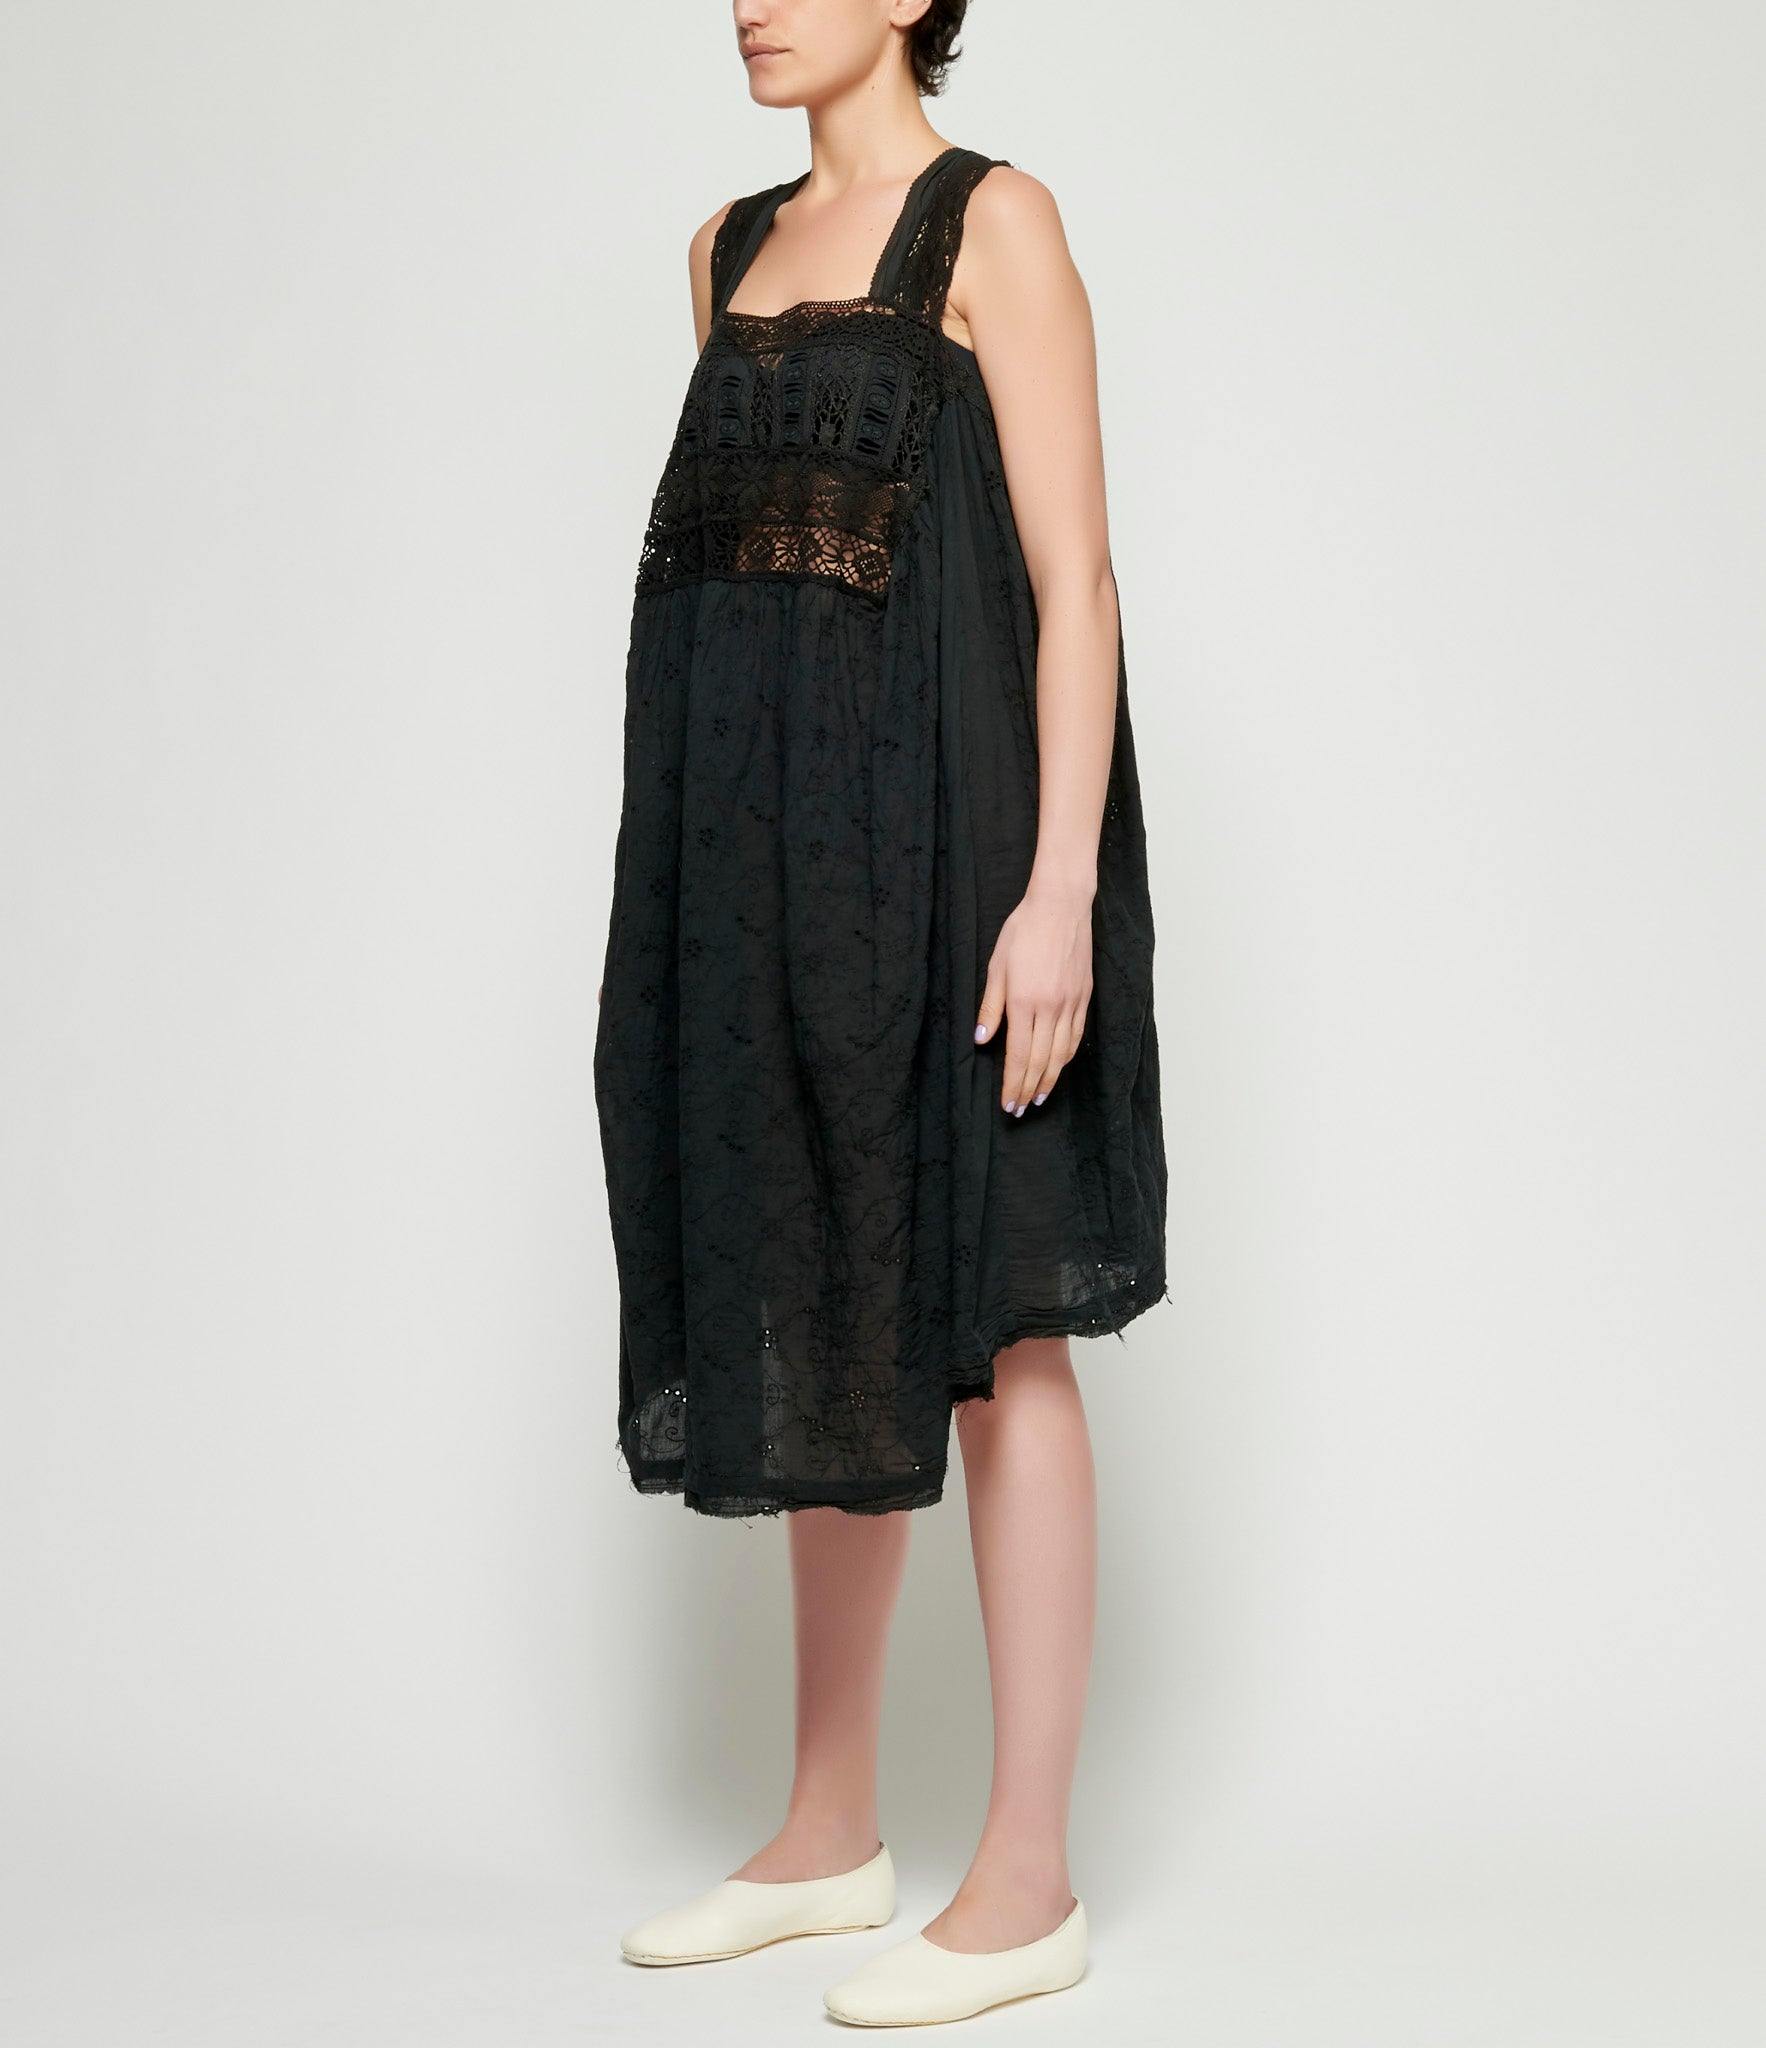 Marc Le Bihan Woven Embroidered Lace Dress